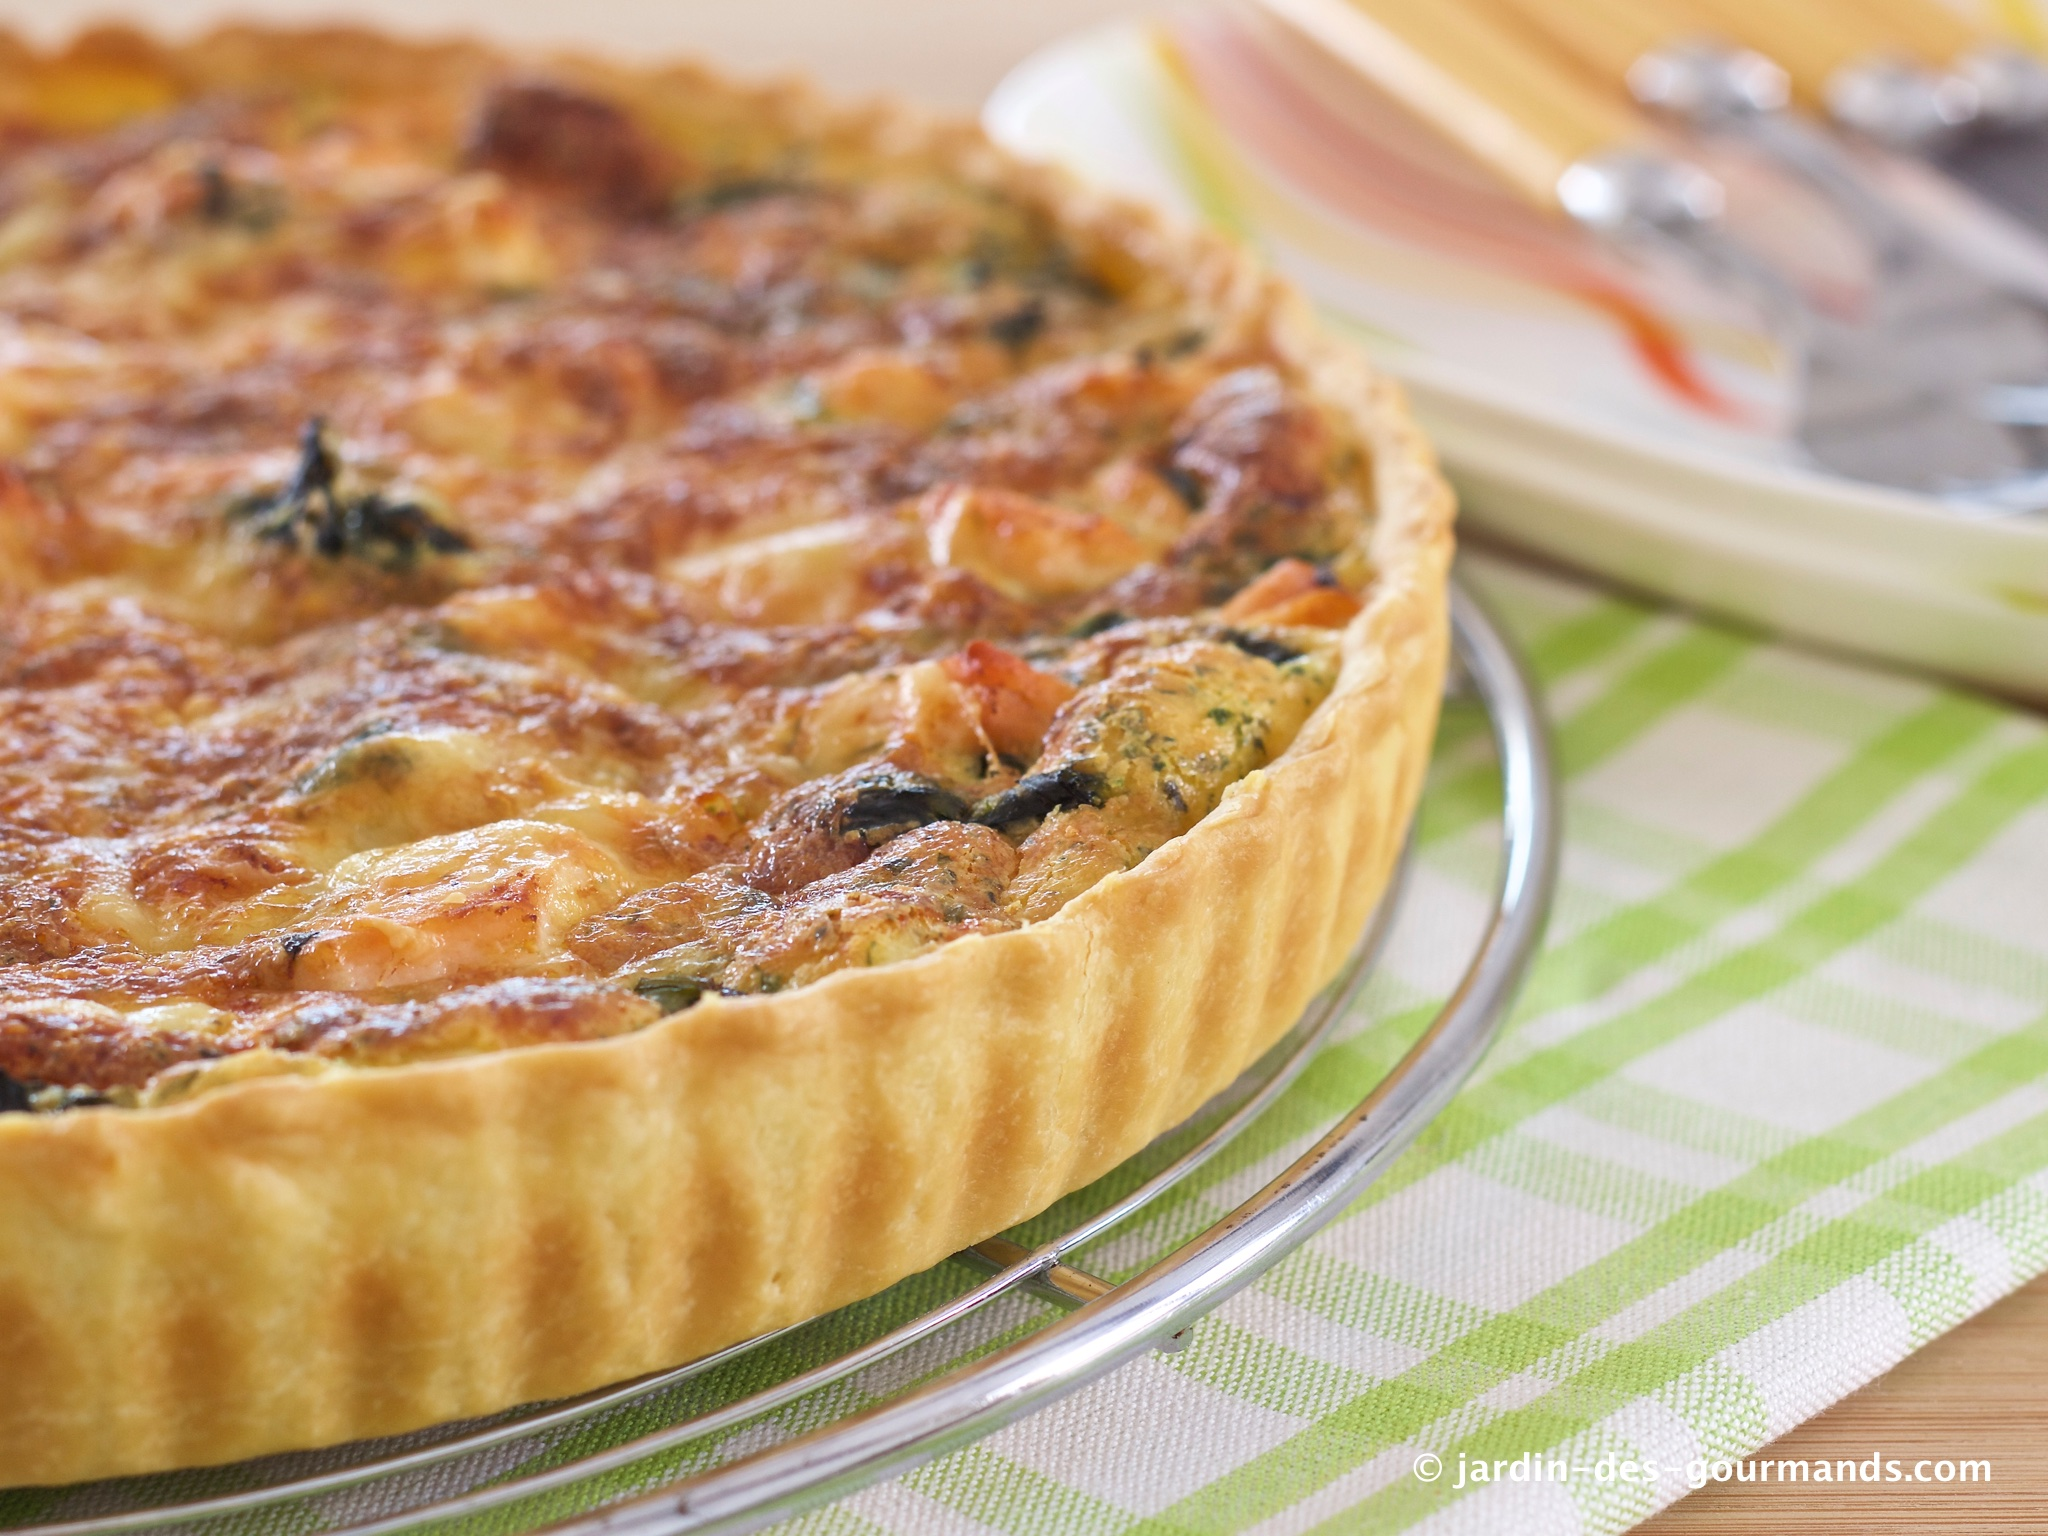 quiche-saumon-et-epinards-jdg3